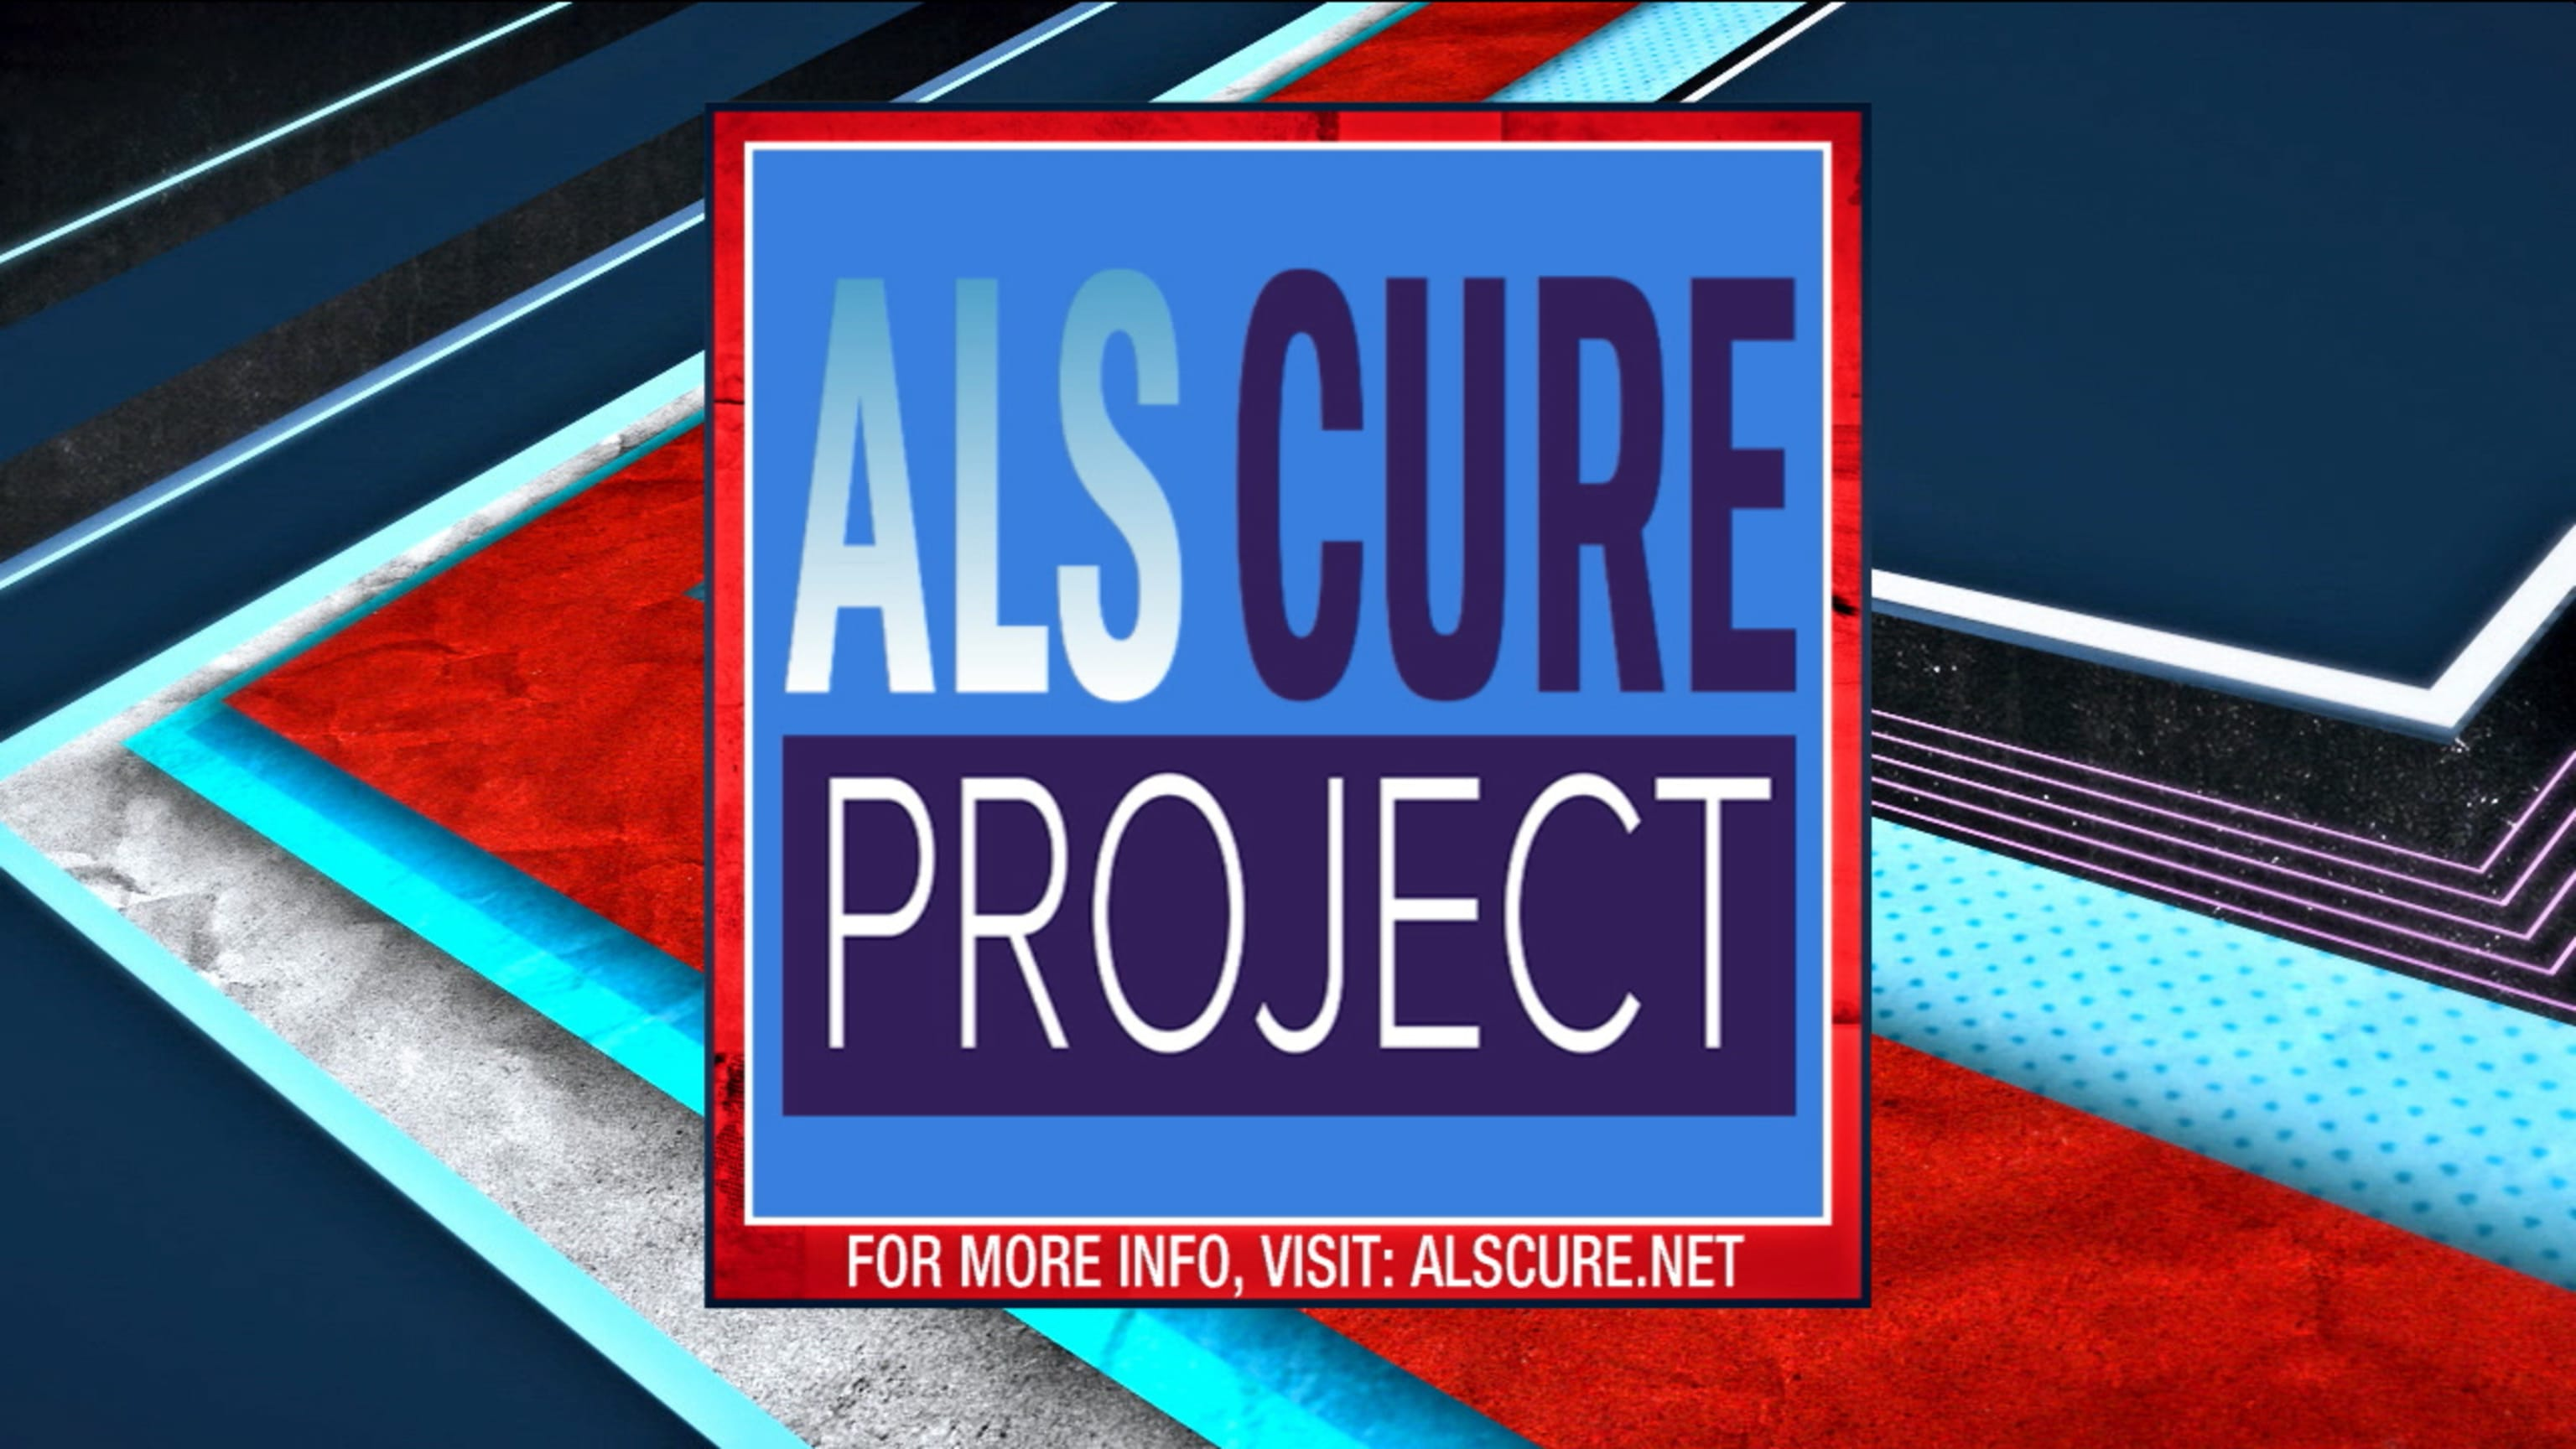 Piscotty on ALS Cure Project